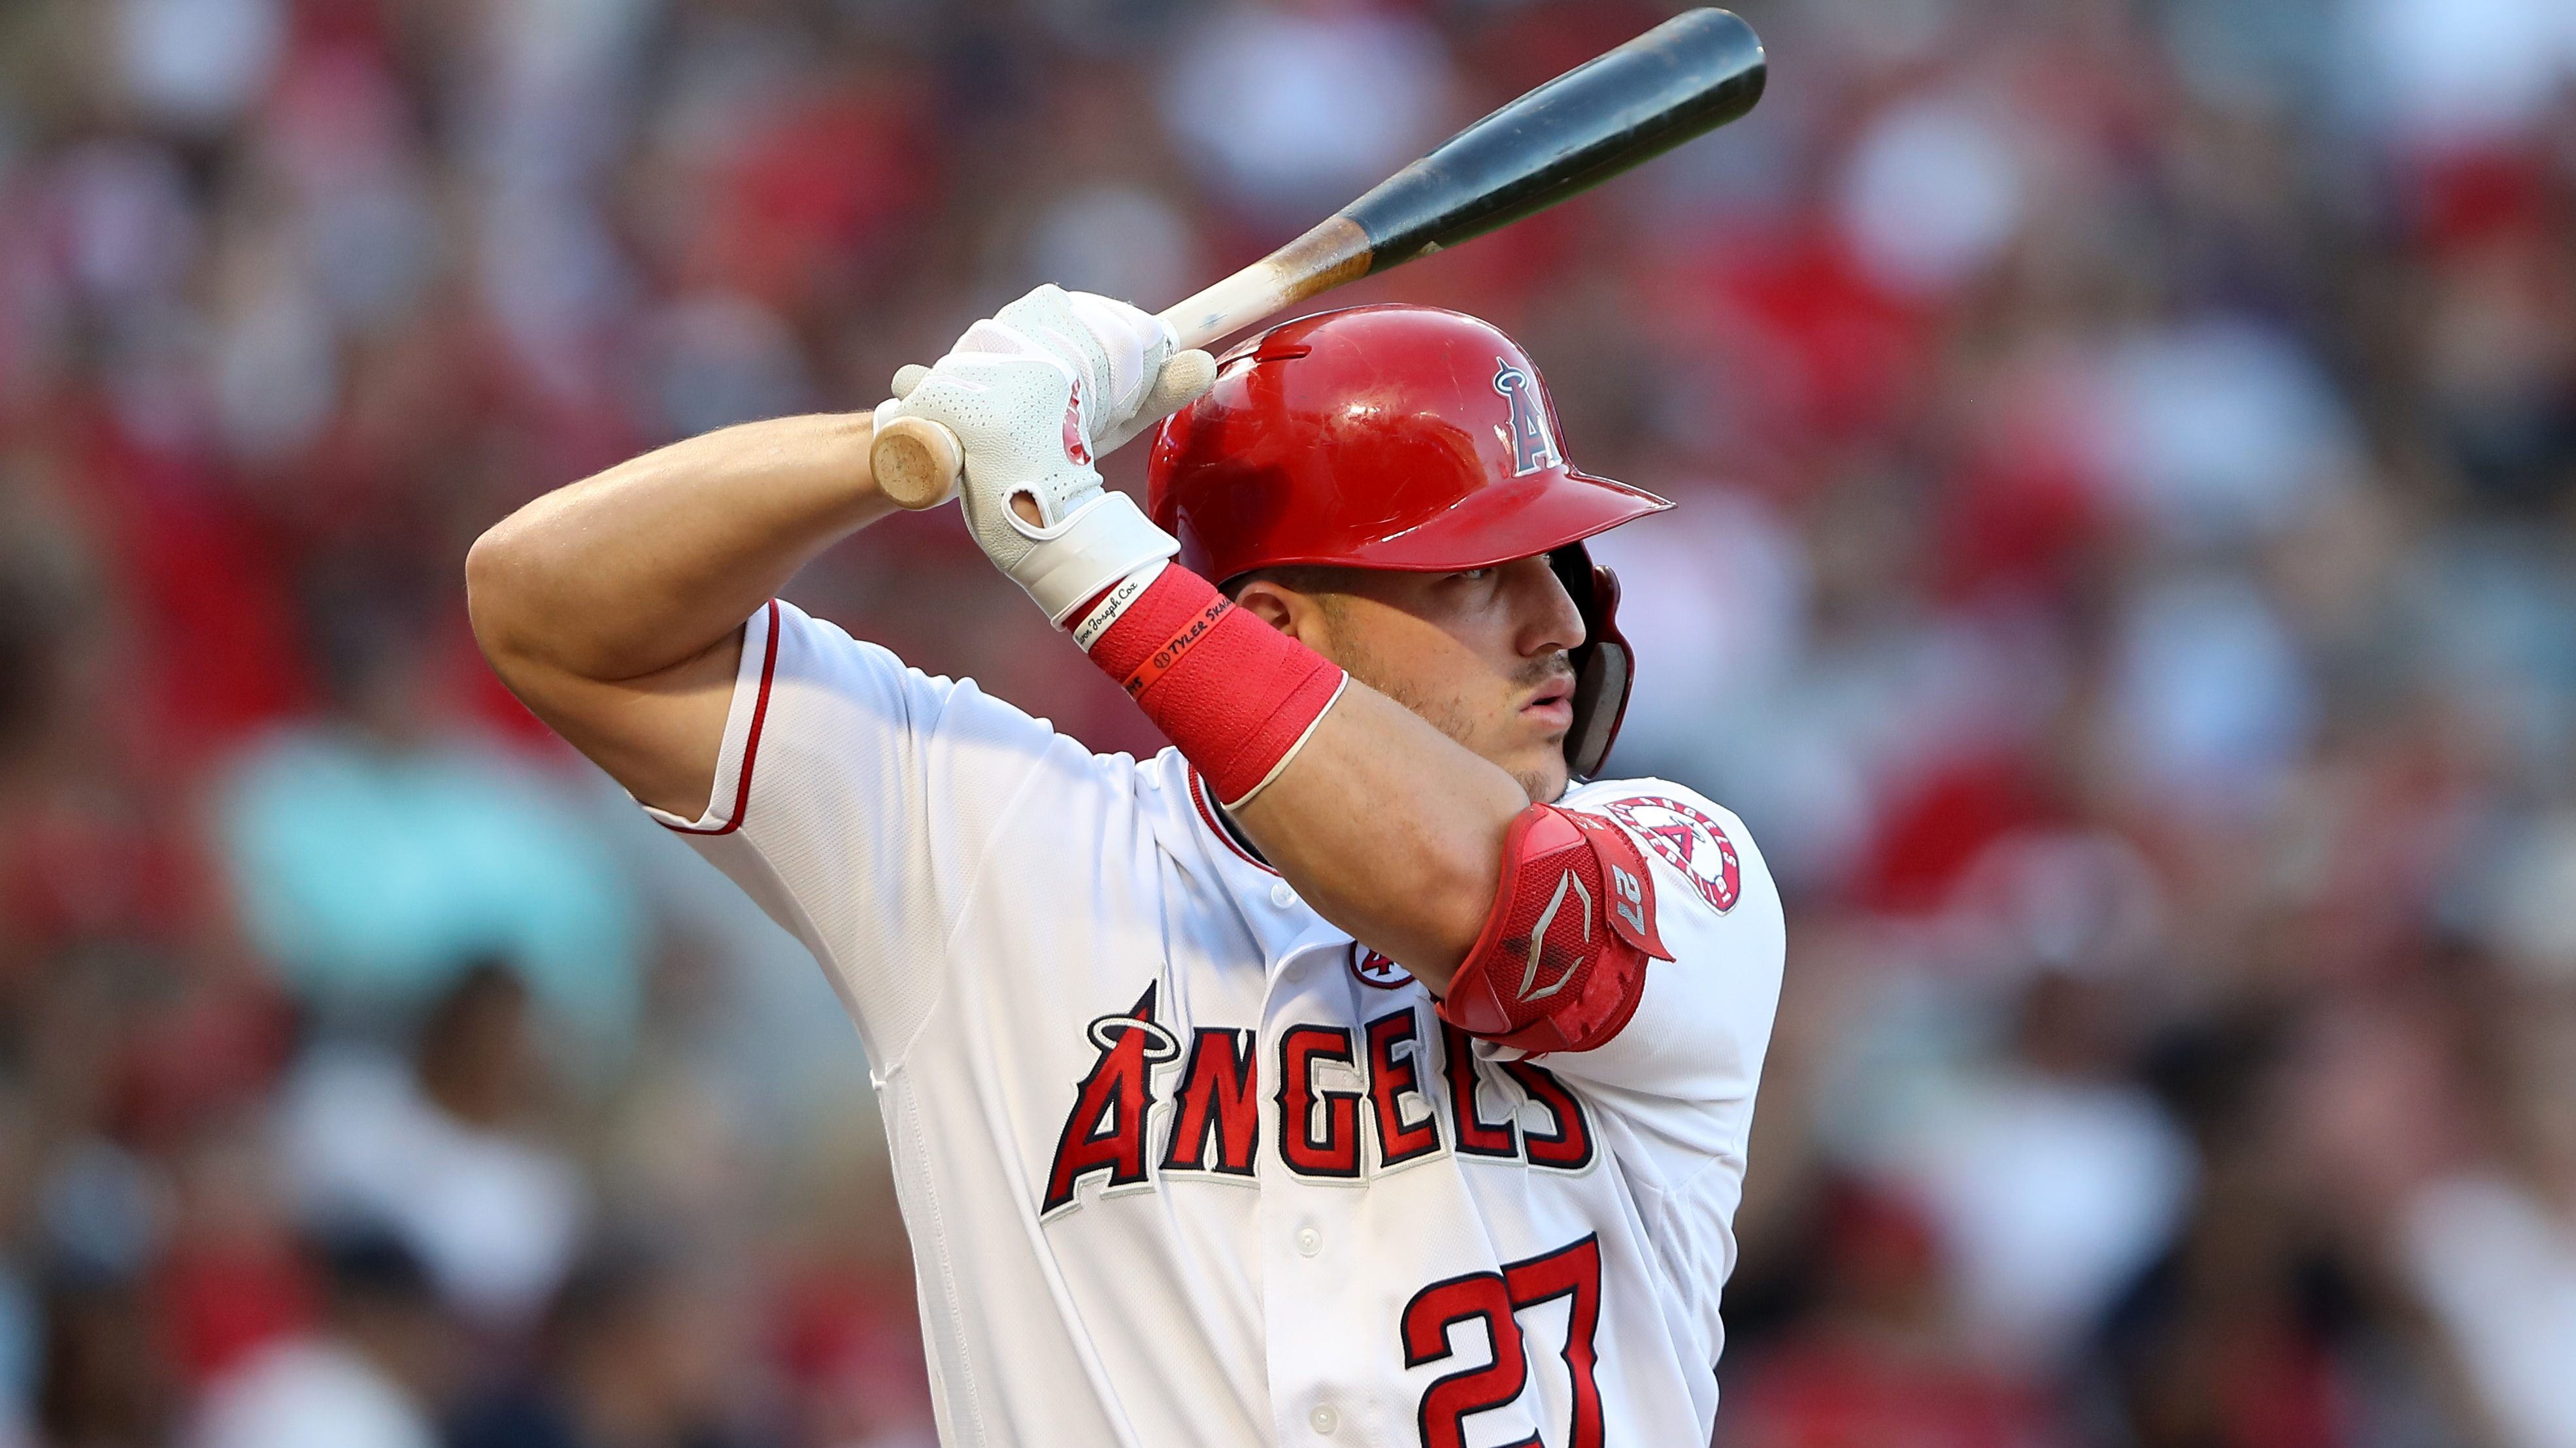 Mike Trout voted 2019 American League Most Valuable Player